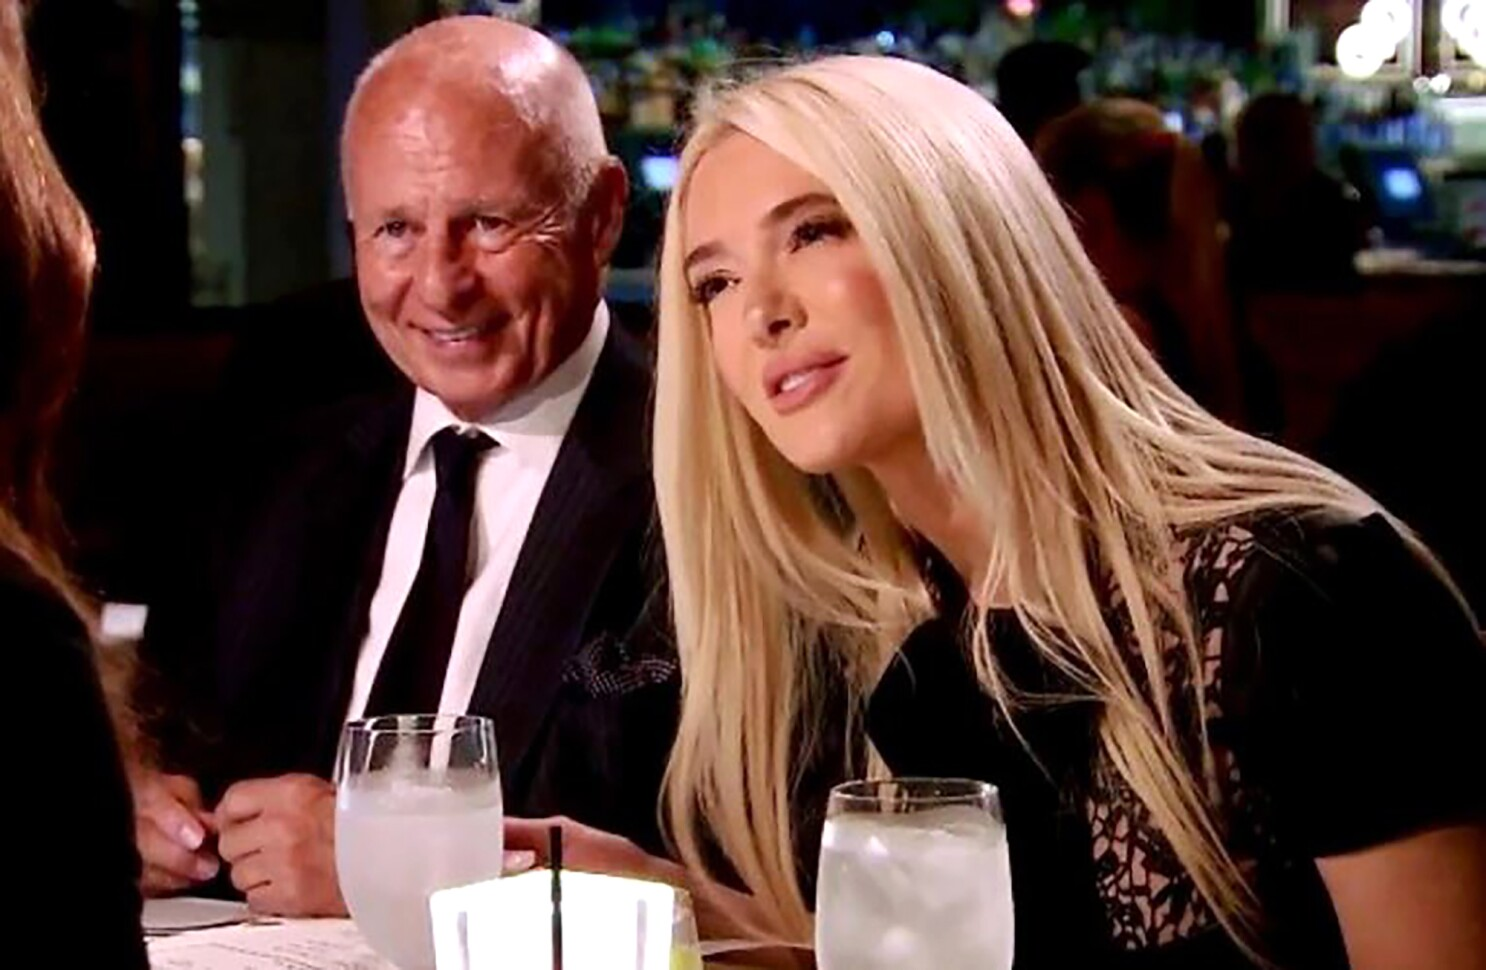 How 'Real Housewives' could affect Tom, Erika Girardi scandal - Los Angeles  Times